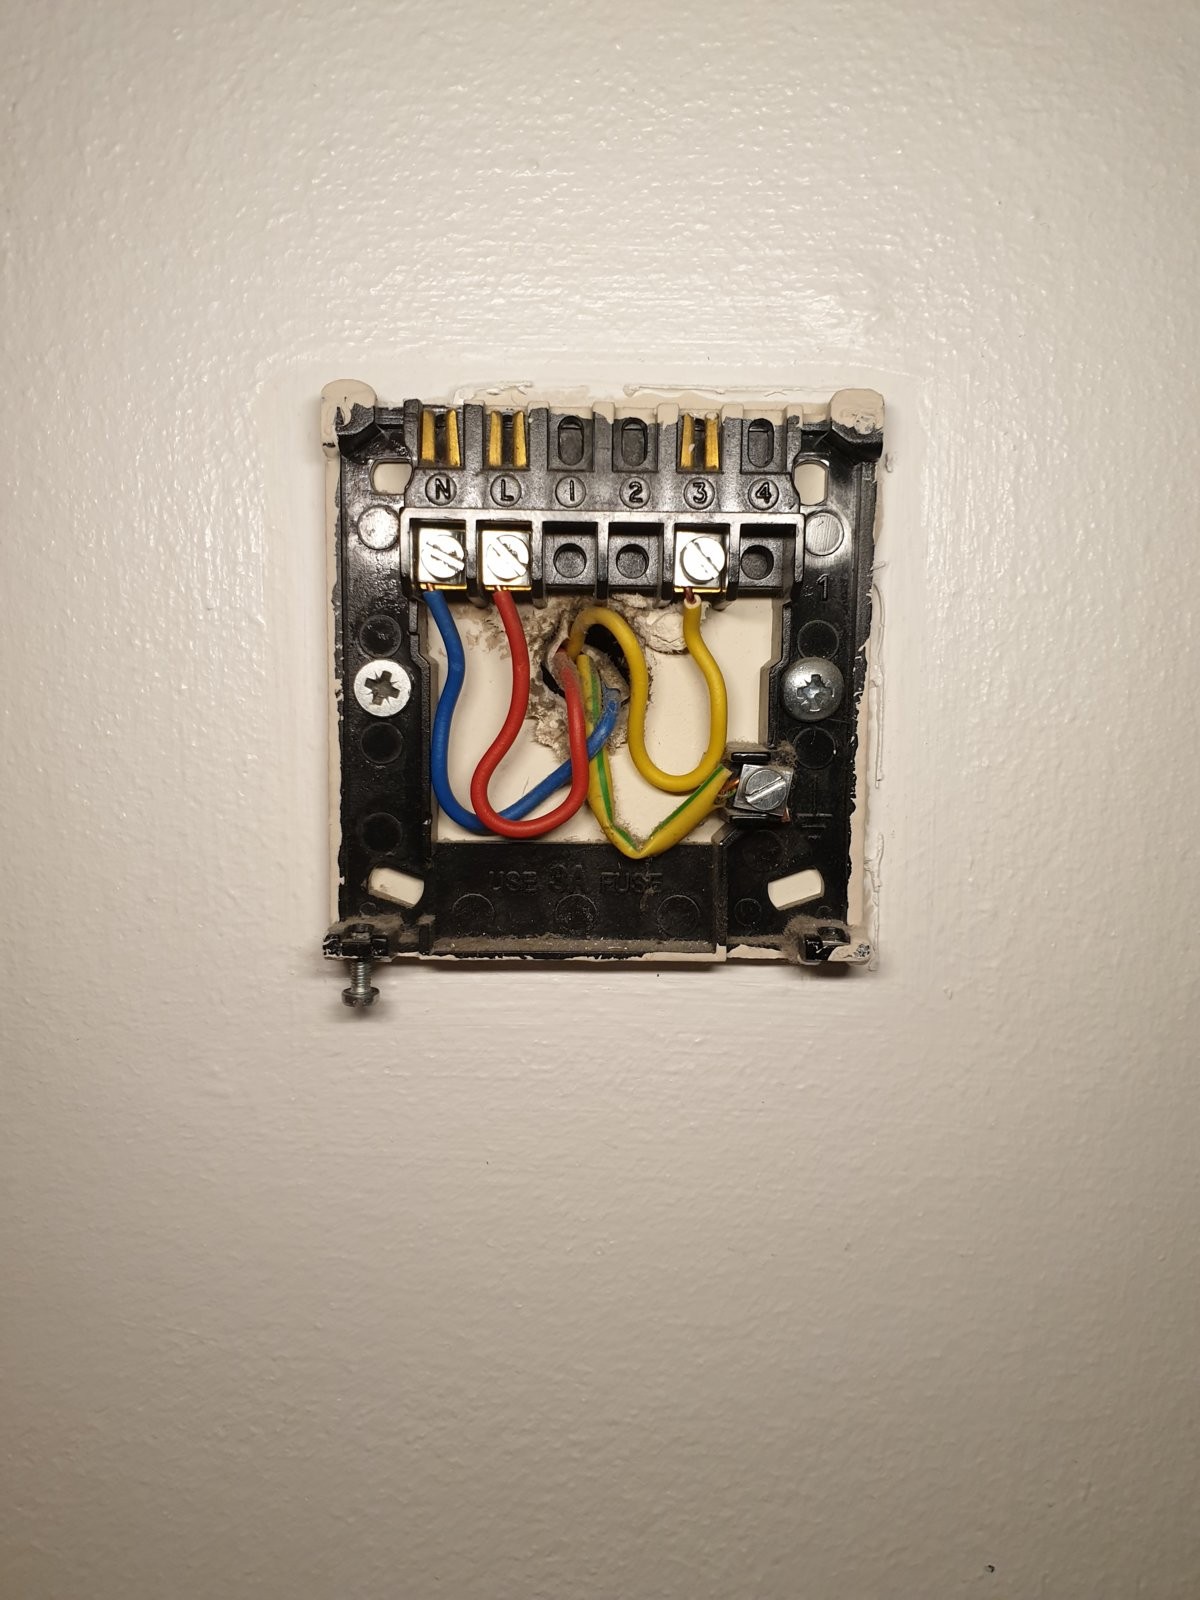 Swapping Drayton Rts1 For Digital Thermostat